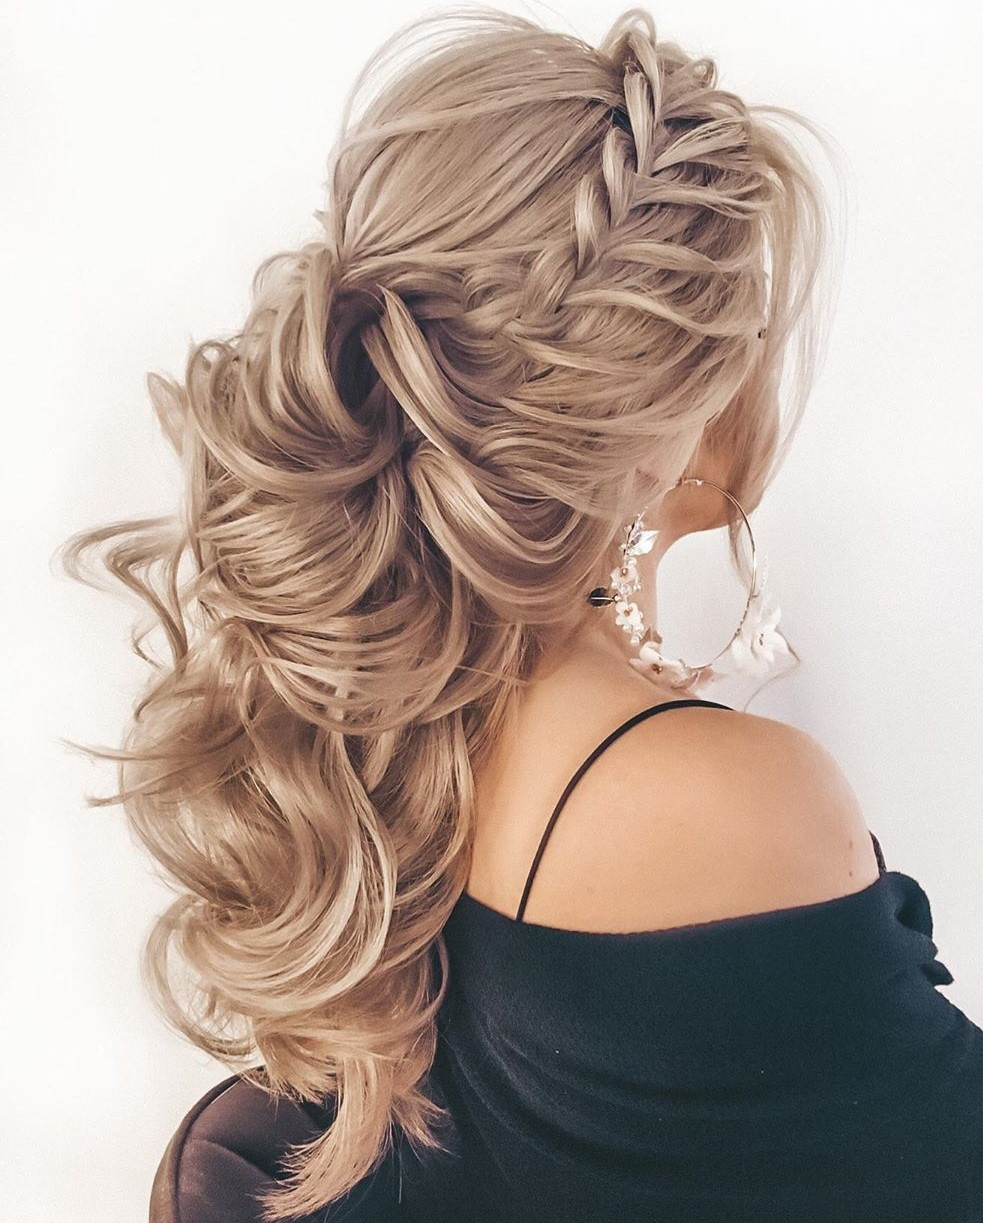 Curly Half Up Hairstyle with a Braid